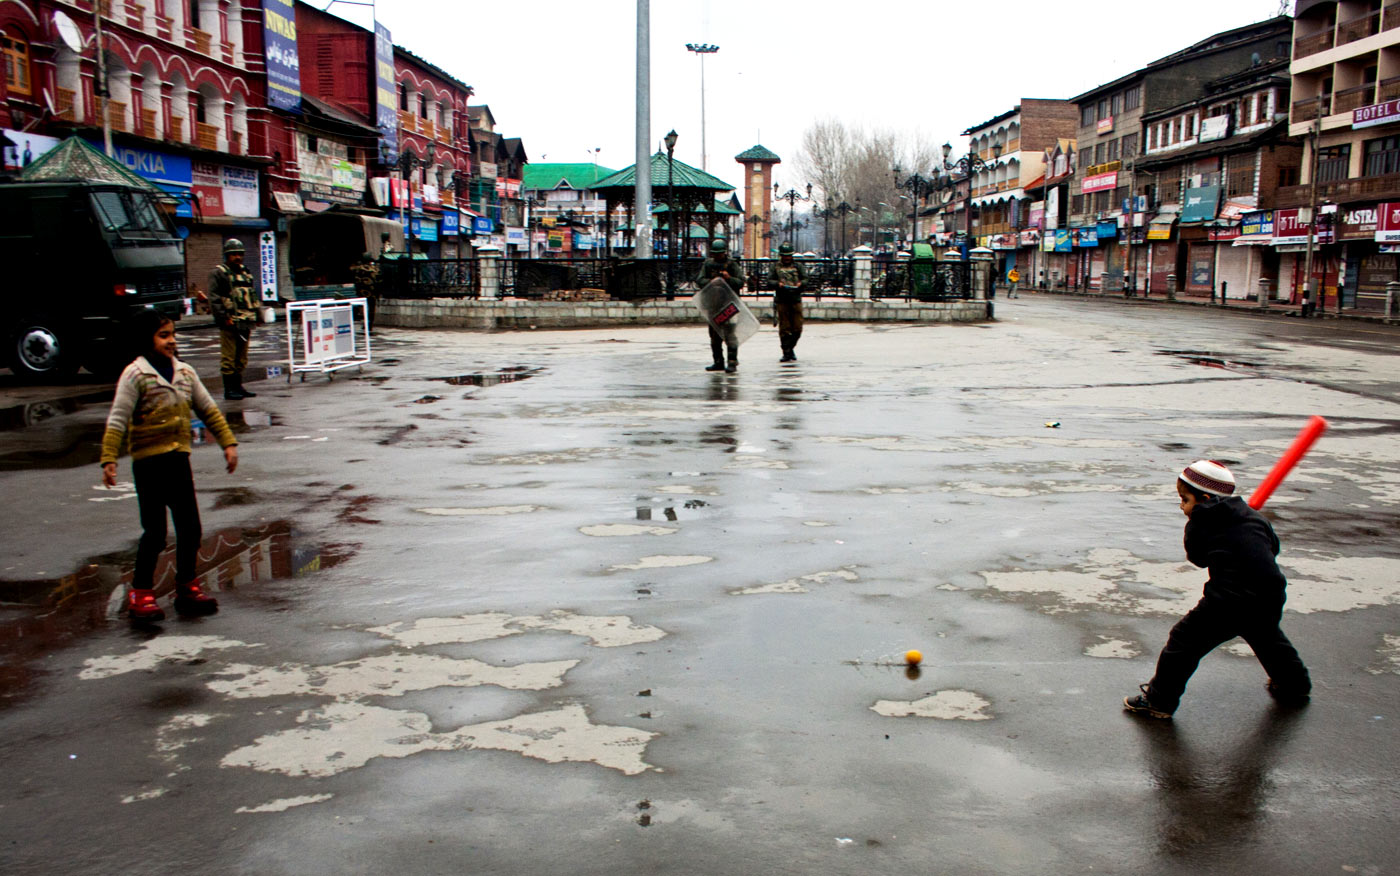 Bats and battalions: the military is an ever-present backdrop for cricket in Kashmir